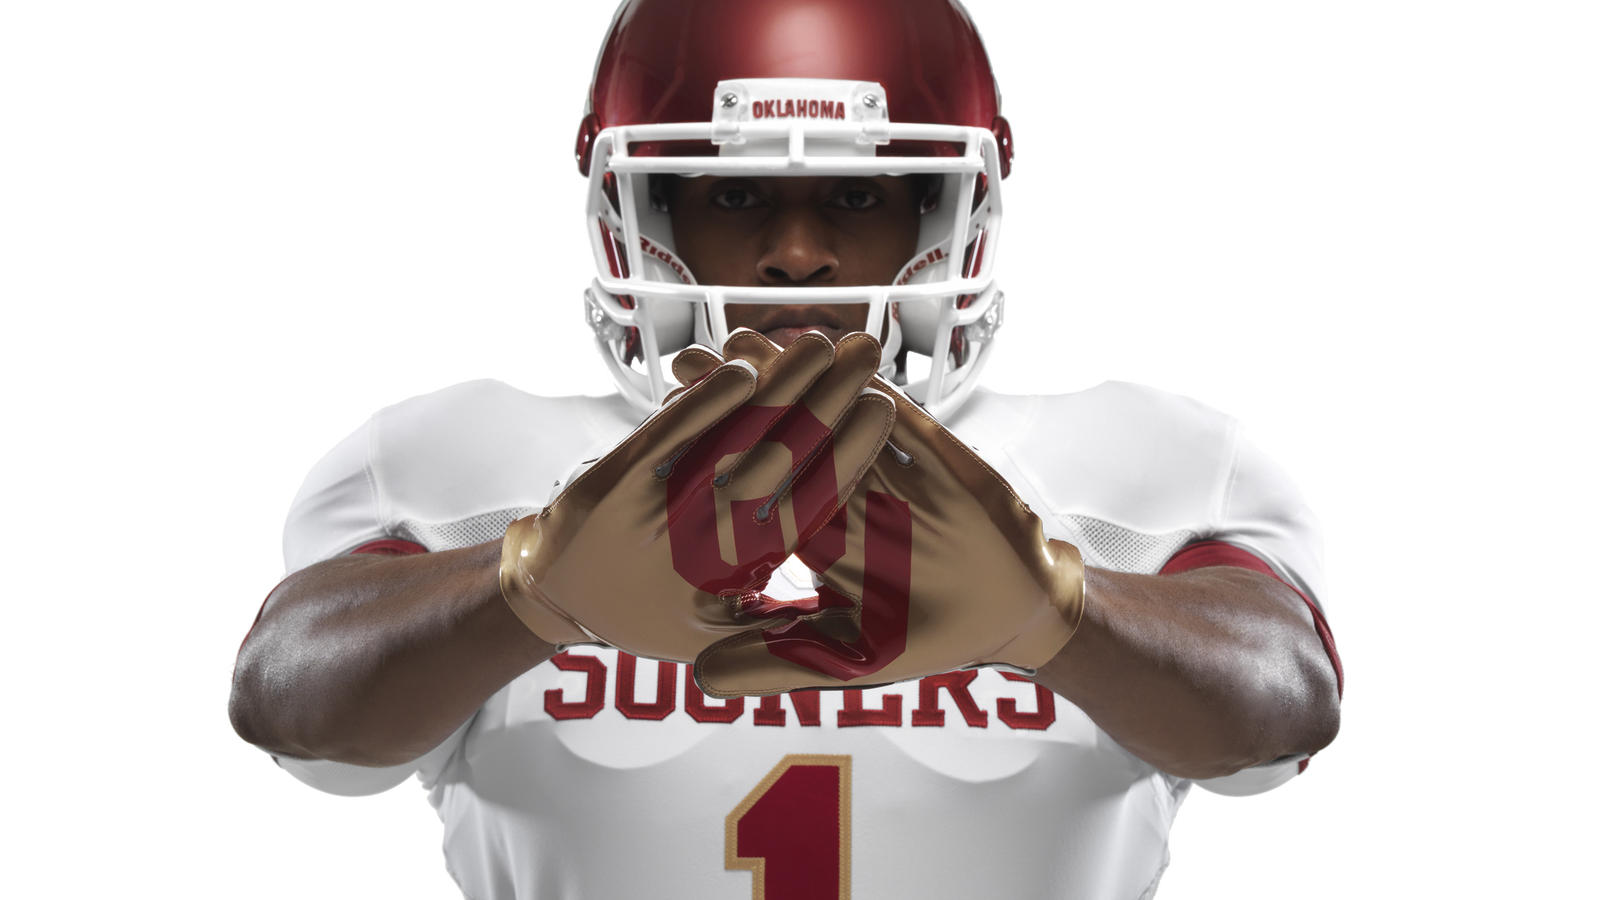 ncaa_fb13_uniforms_oklahoma_gloves_0087